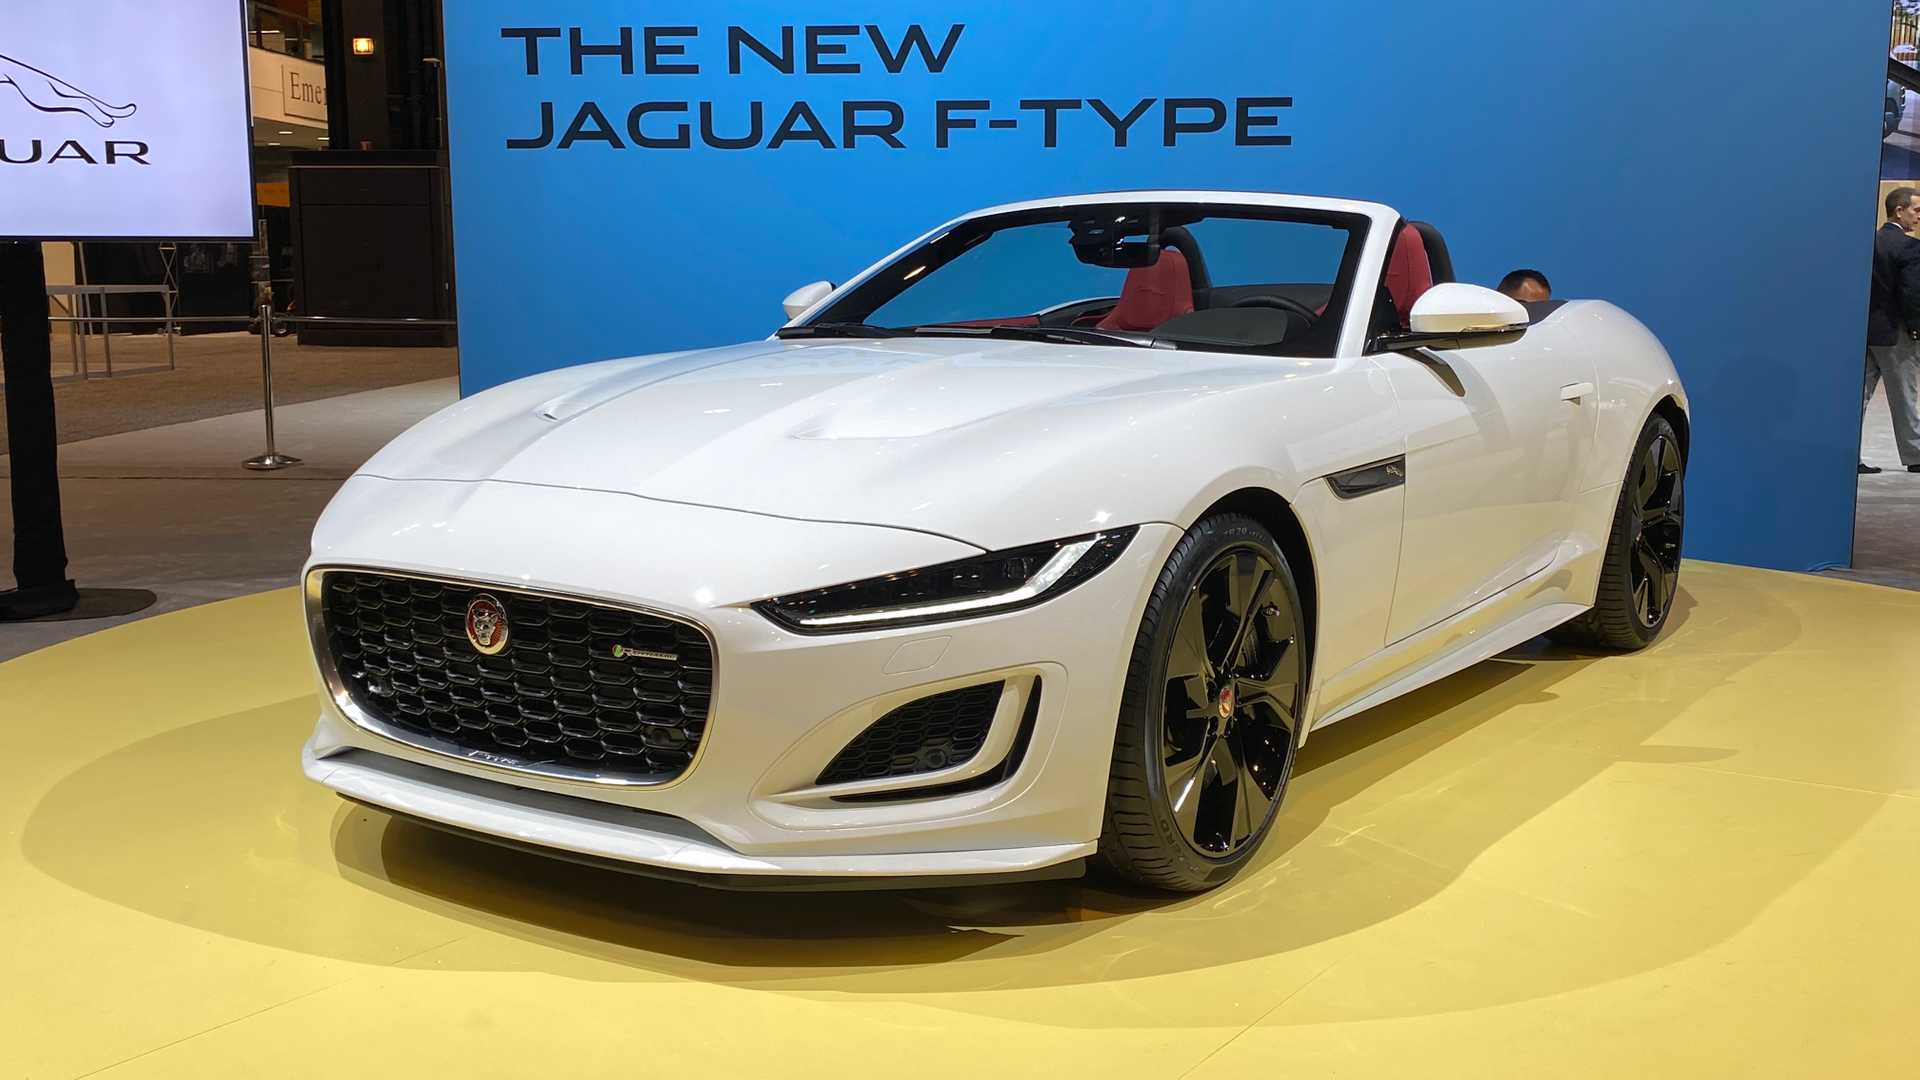 2021 jaguar ftype debuts with smoother shape new v8 option